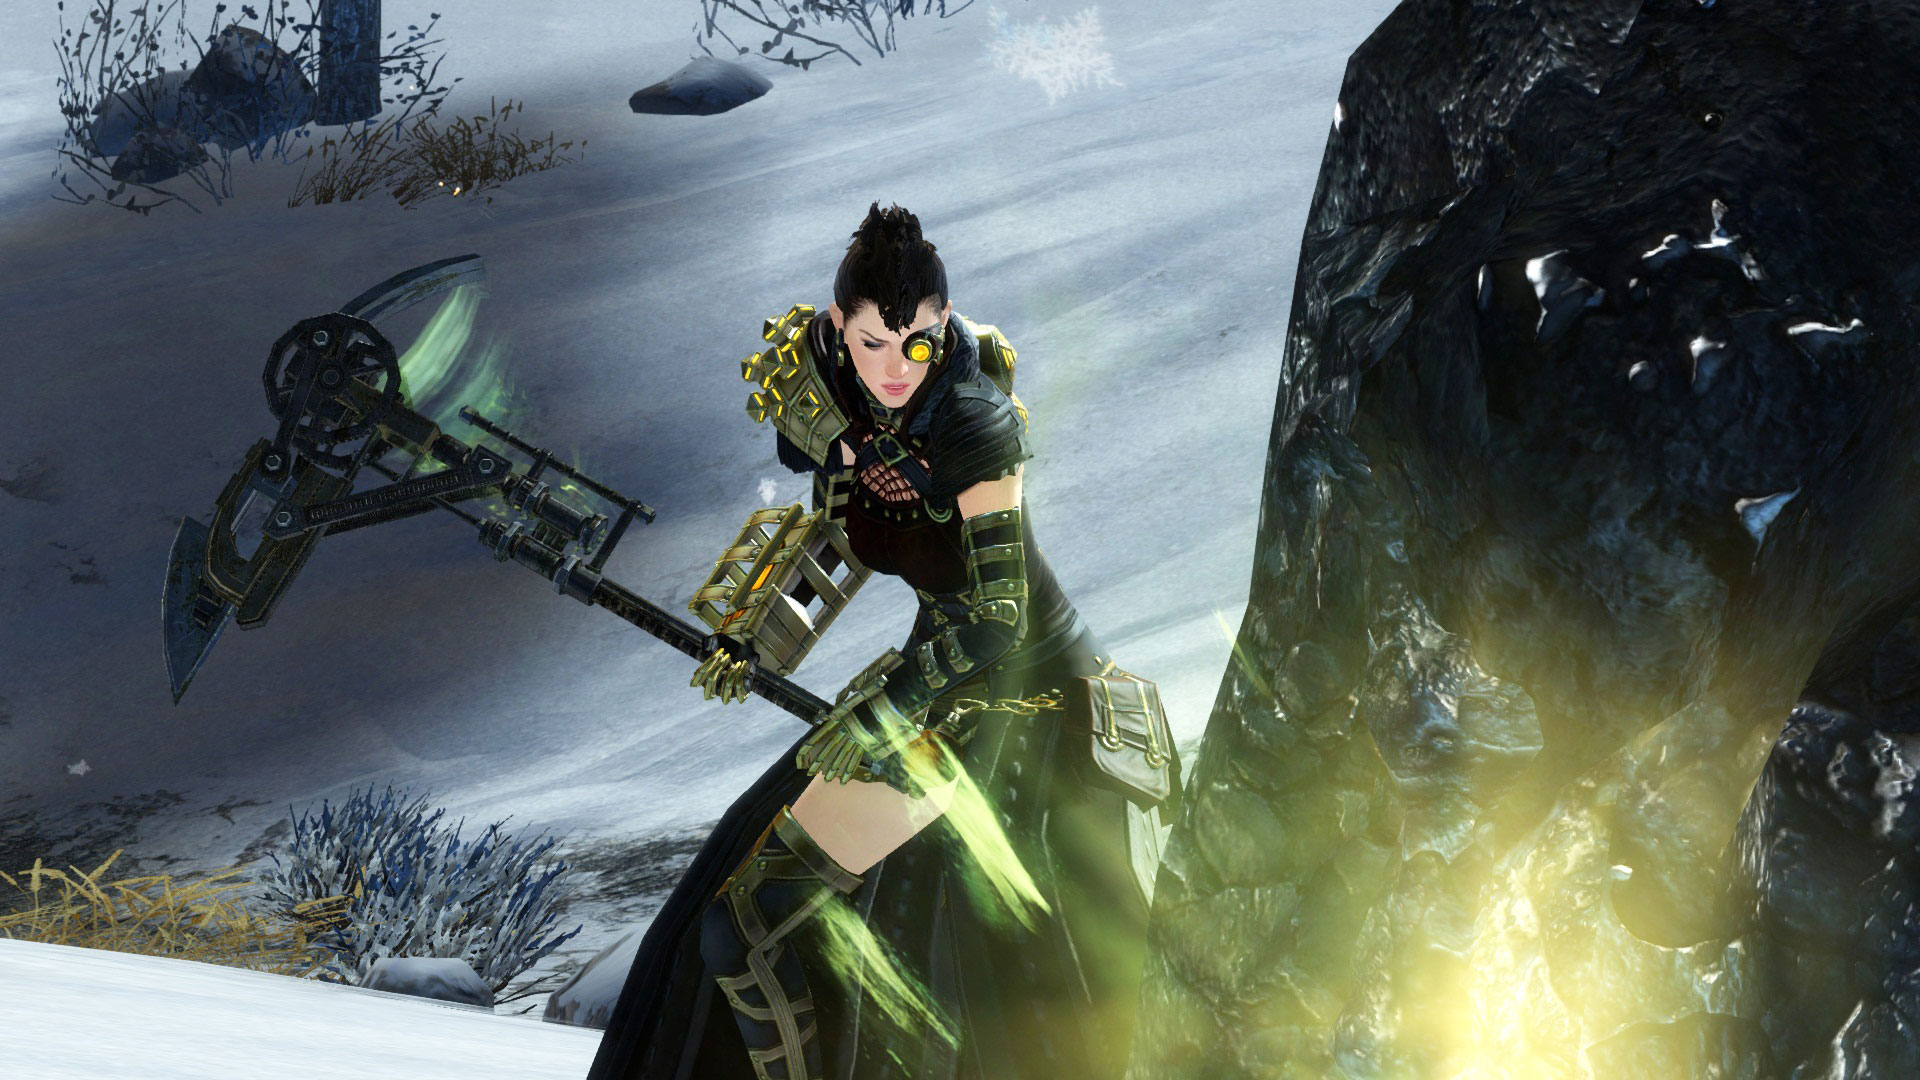 Guild Wars 2 has completely overhauled gathering tools with glyph